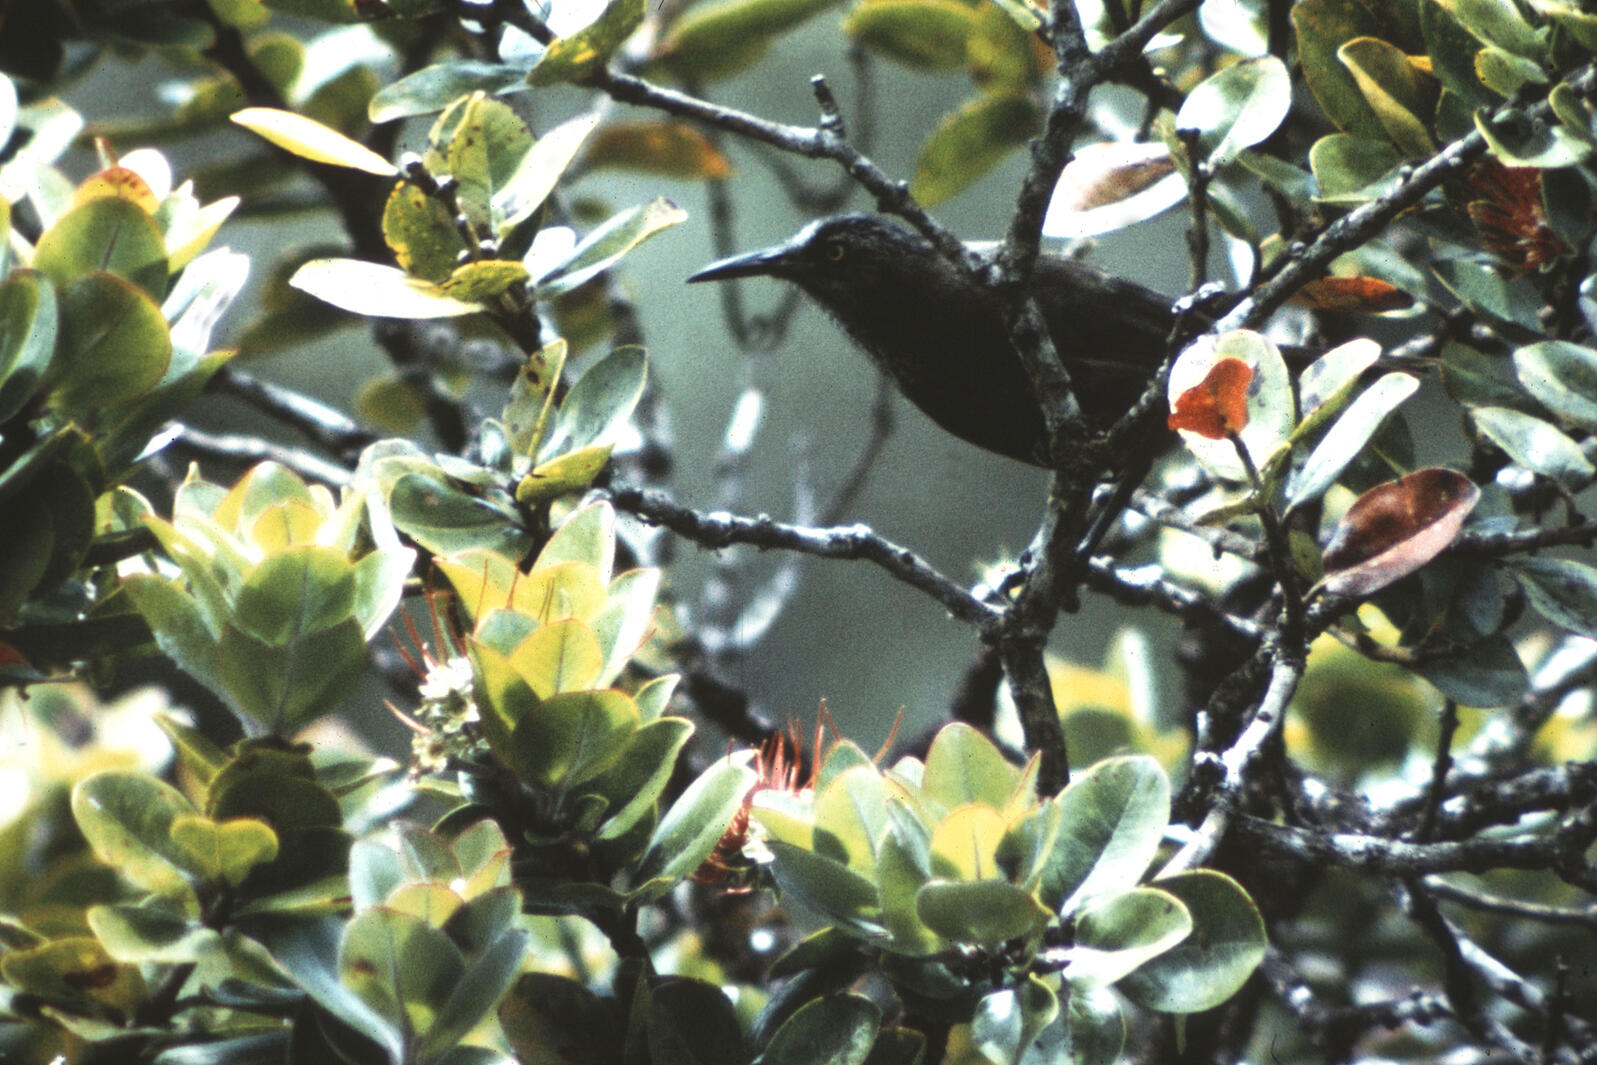 An eight-inch black bird with a long bill sits in a tree with many waxy green leaves. The photo quality is not very sharp, giving away the photo's age—it was taken in 1975.